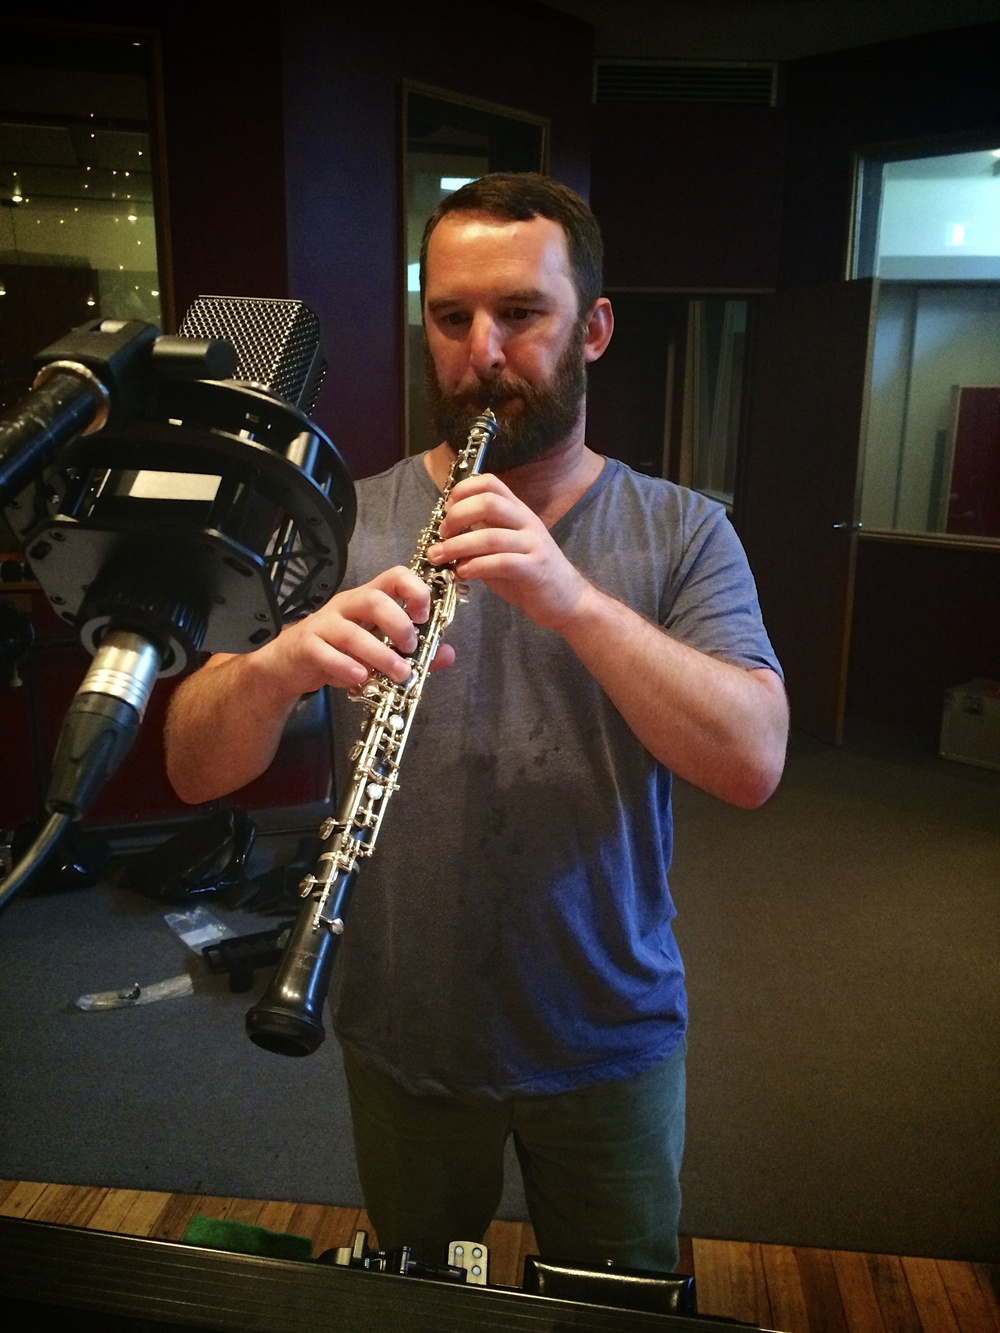 Ben, the oboe, and the LCT640.jpg